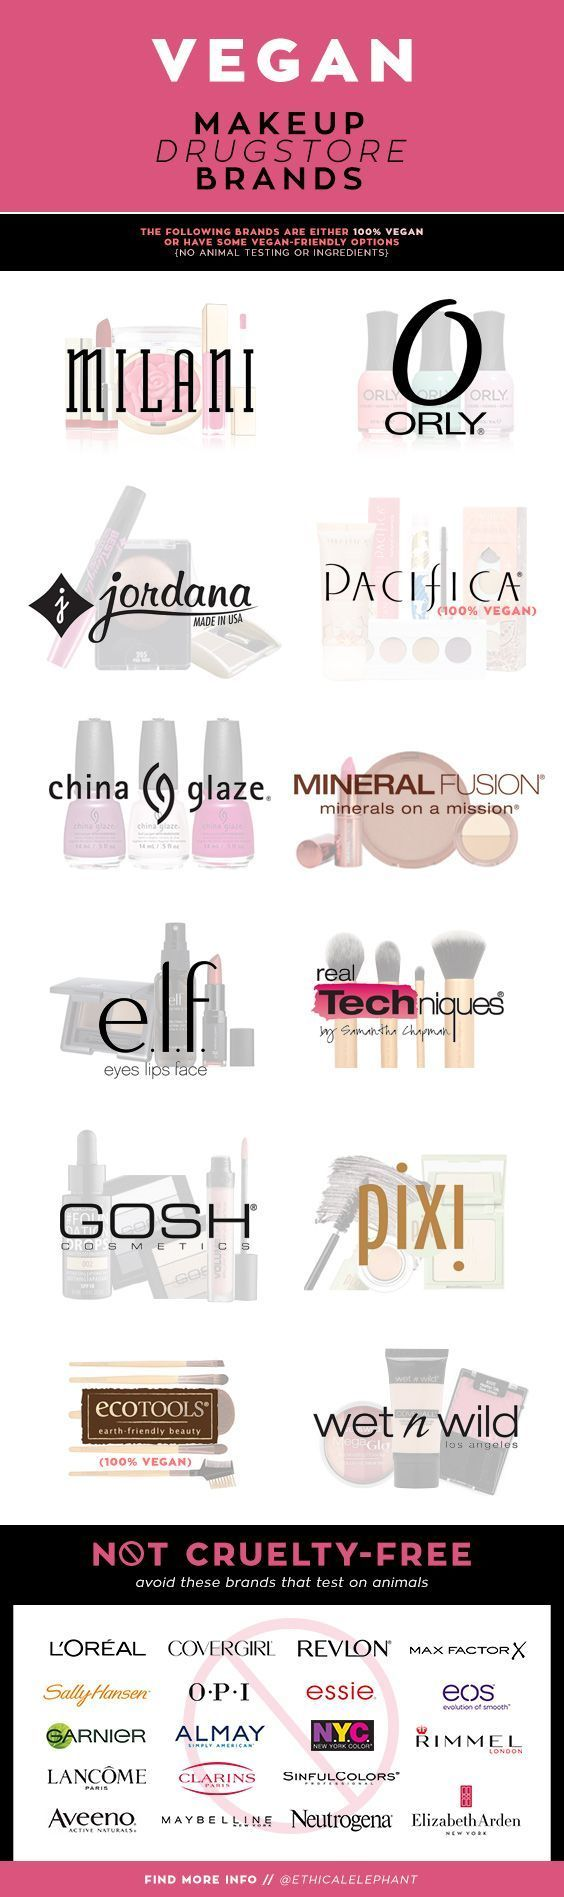 Full list of Vegan makeup drugstore brands and which